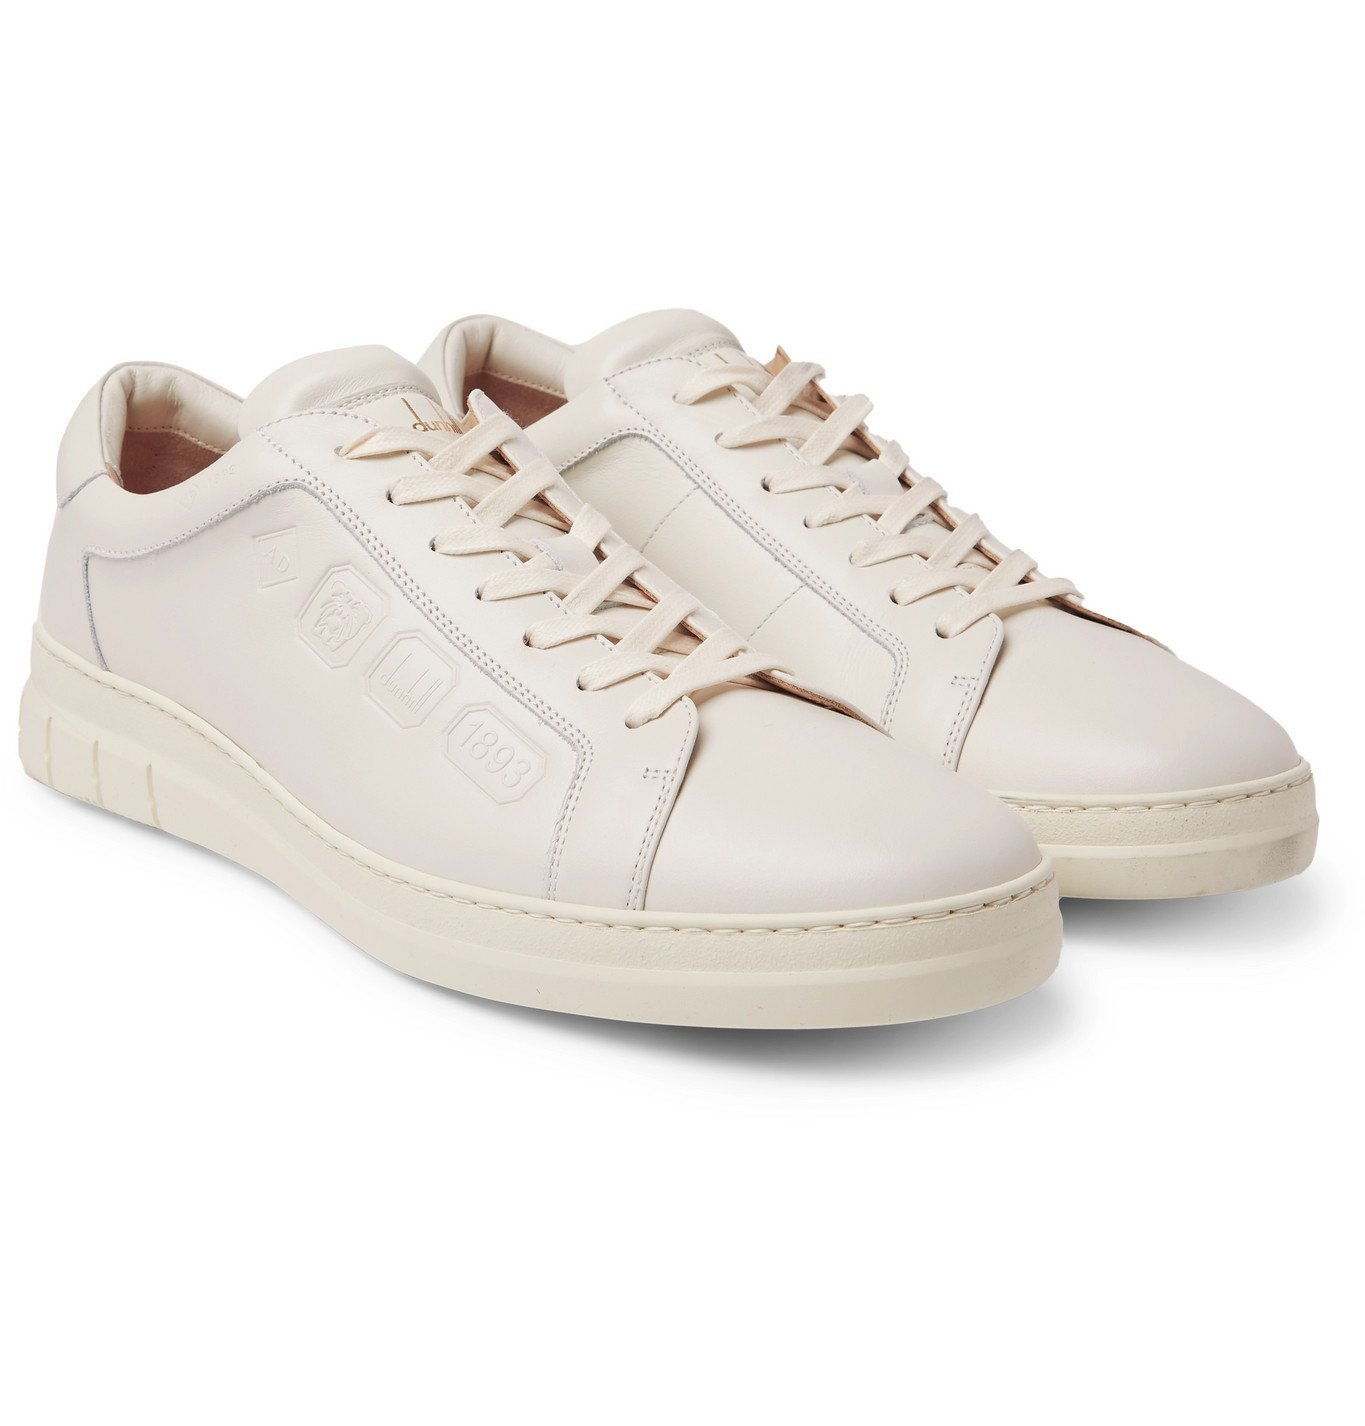 Dunhill - Hallmark Embossed Leather Sneakers - White